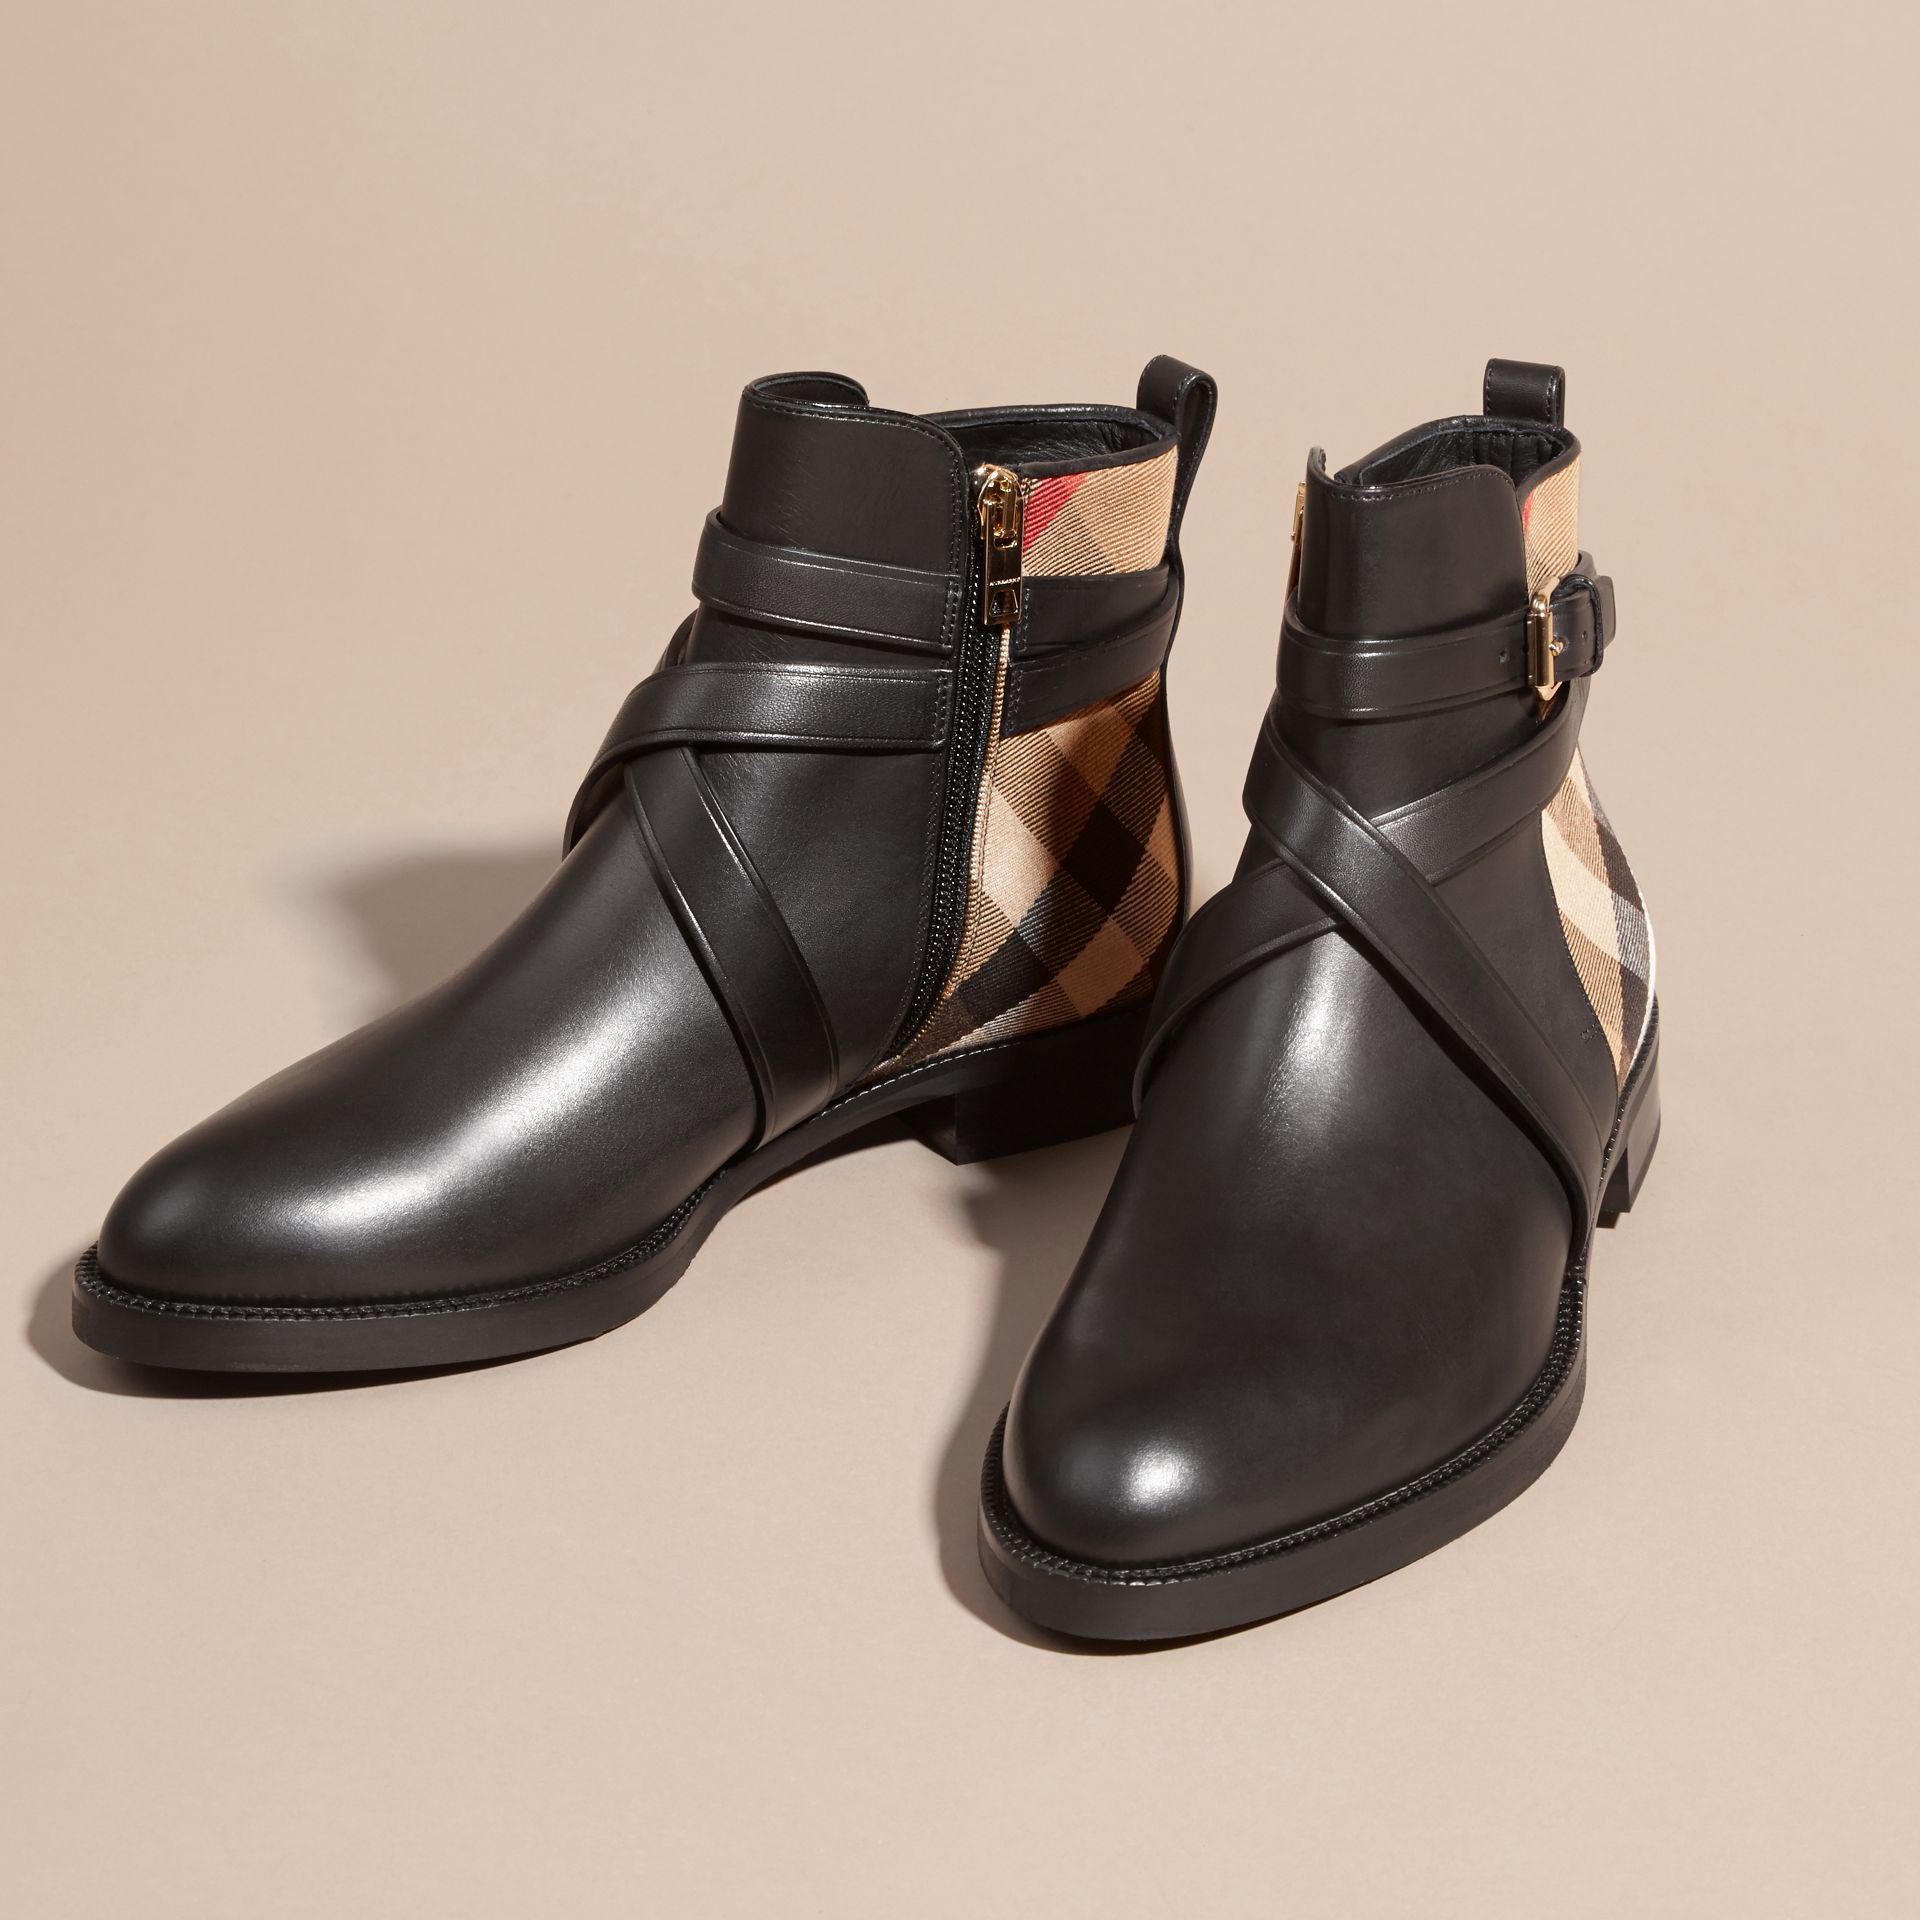 Strap Detail House Check and Leather Ankle Boots in Black - Women | Burberry - gallery image 3